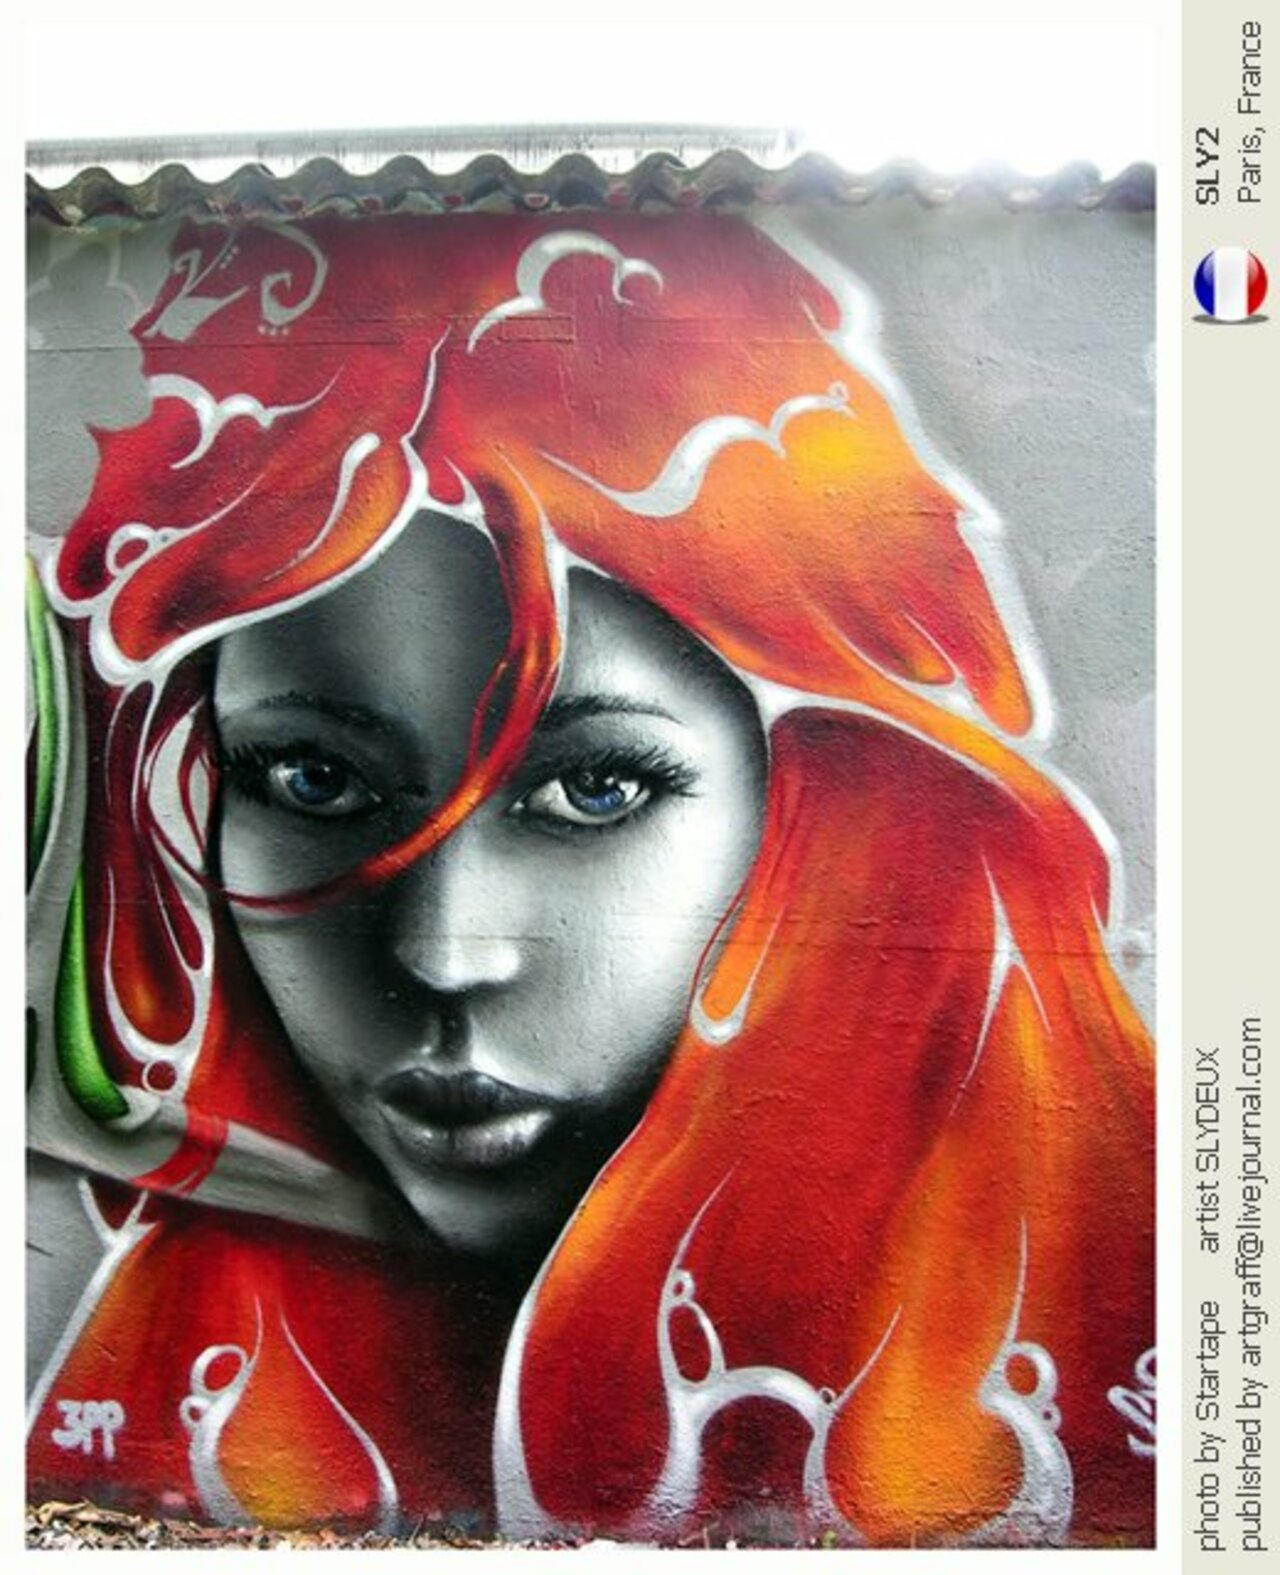 ... like a beautiful lady... in red. Art by Sly2 #StreetArt #Art #Beauty #Red #Graffiti #Mural #UrbanArt #Paris https://t.co/lX3YOWMxSj